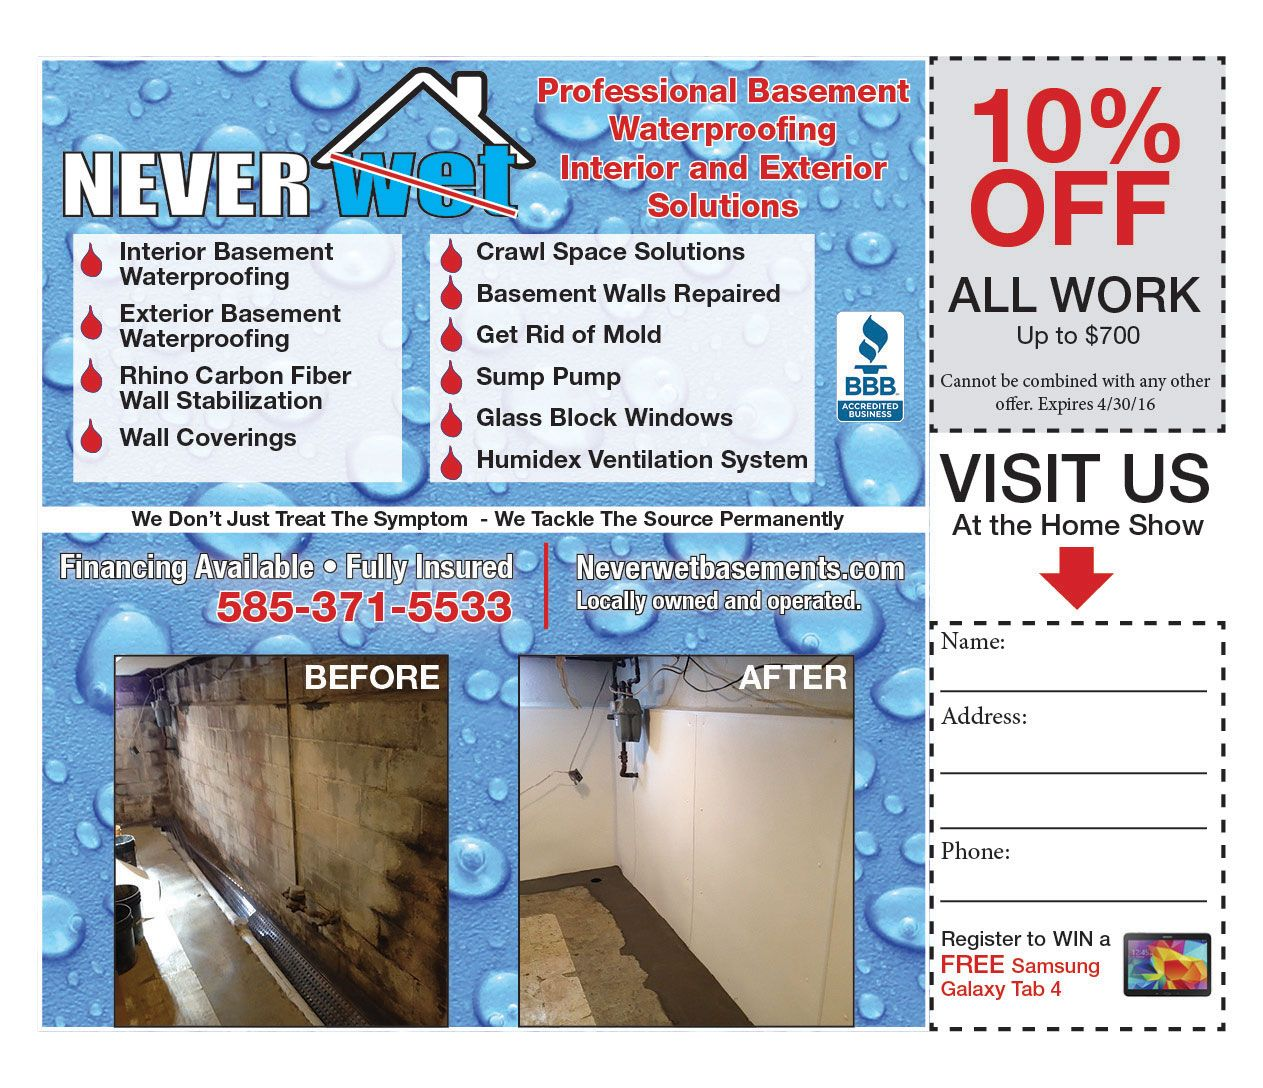 Never Wet Will Help You Waterproof Your Basement For Winter! Prevent  Flooding And Leaks With